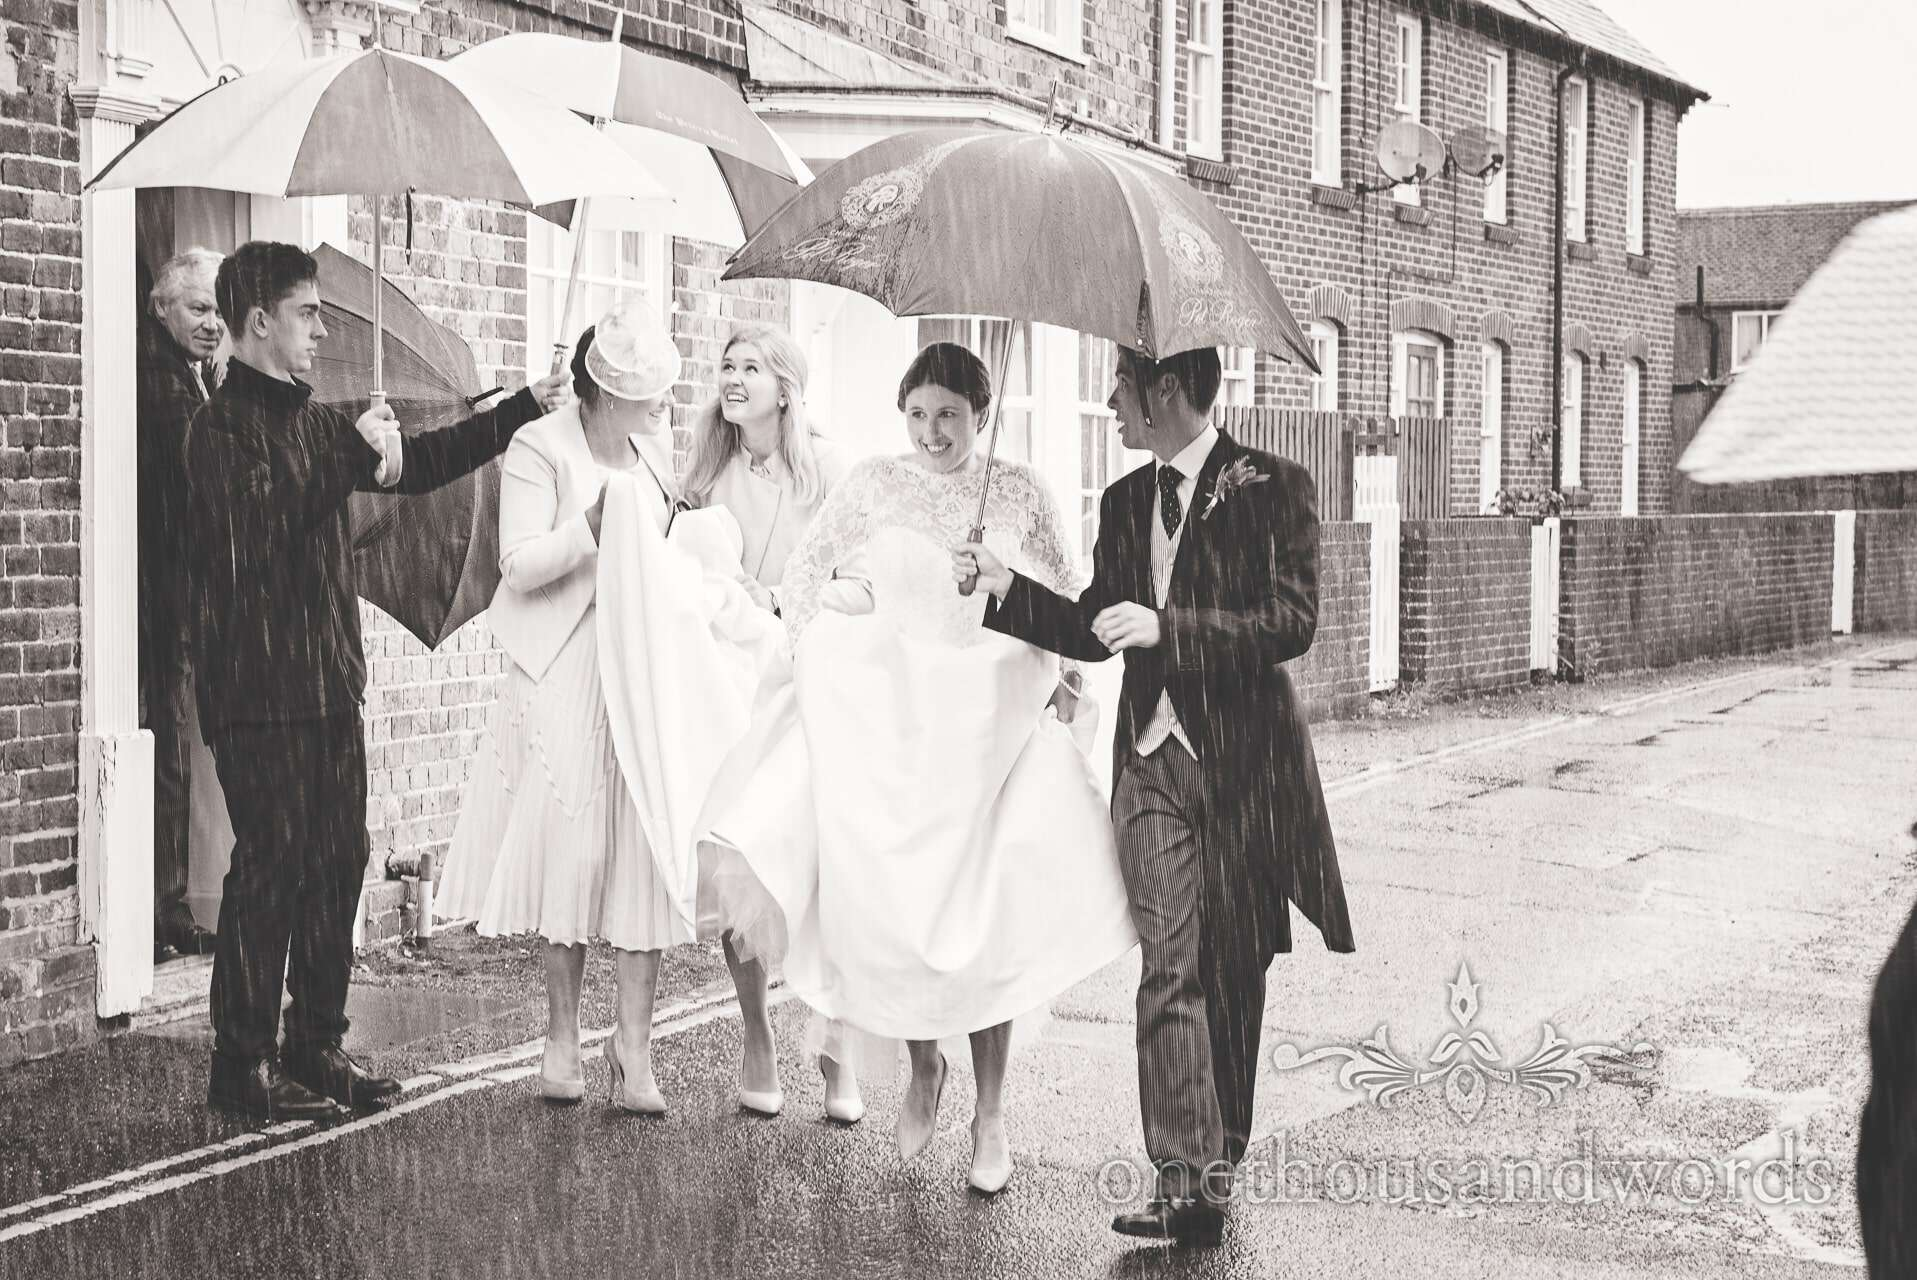 Bride leaves for wedding in the rain under umbrellas